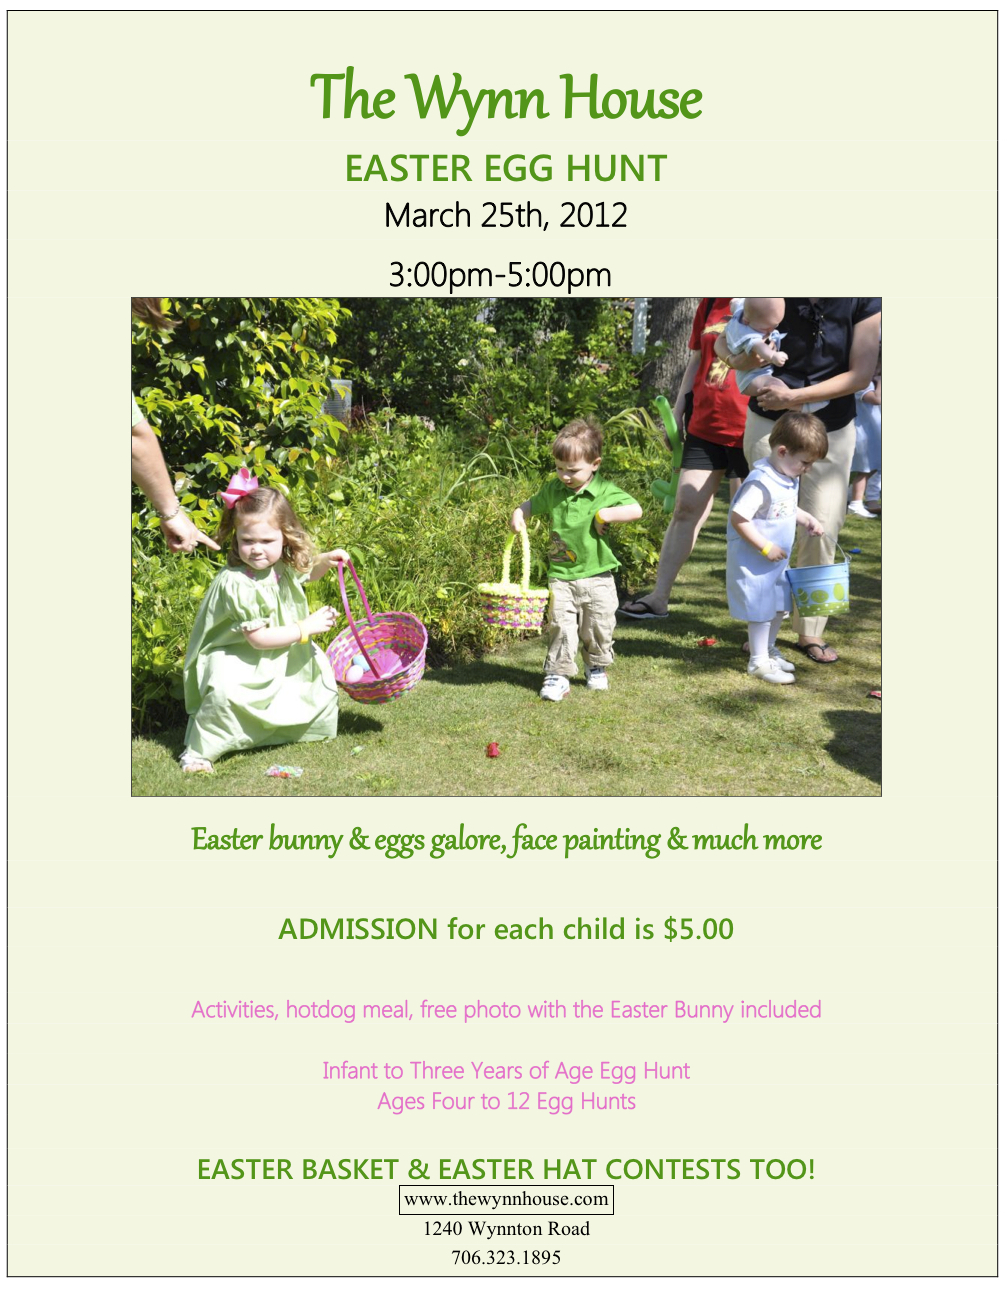 Easter Egg Hunt at the Wynn House